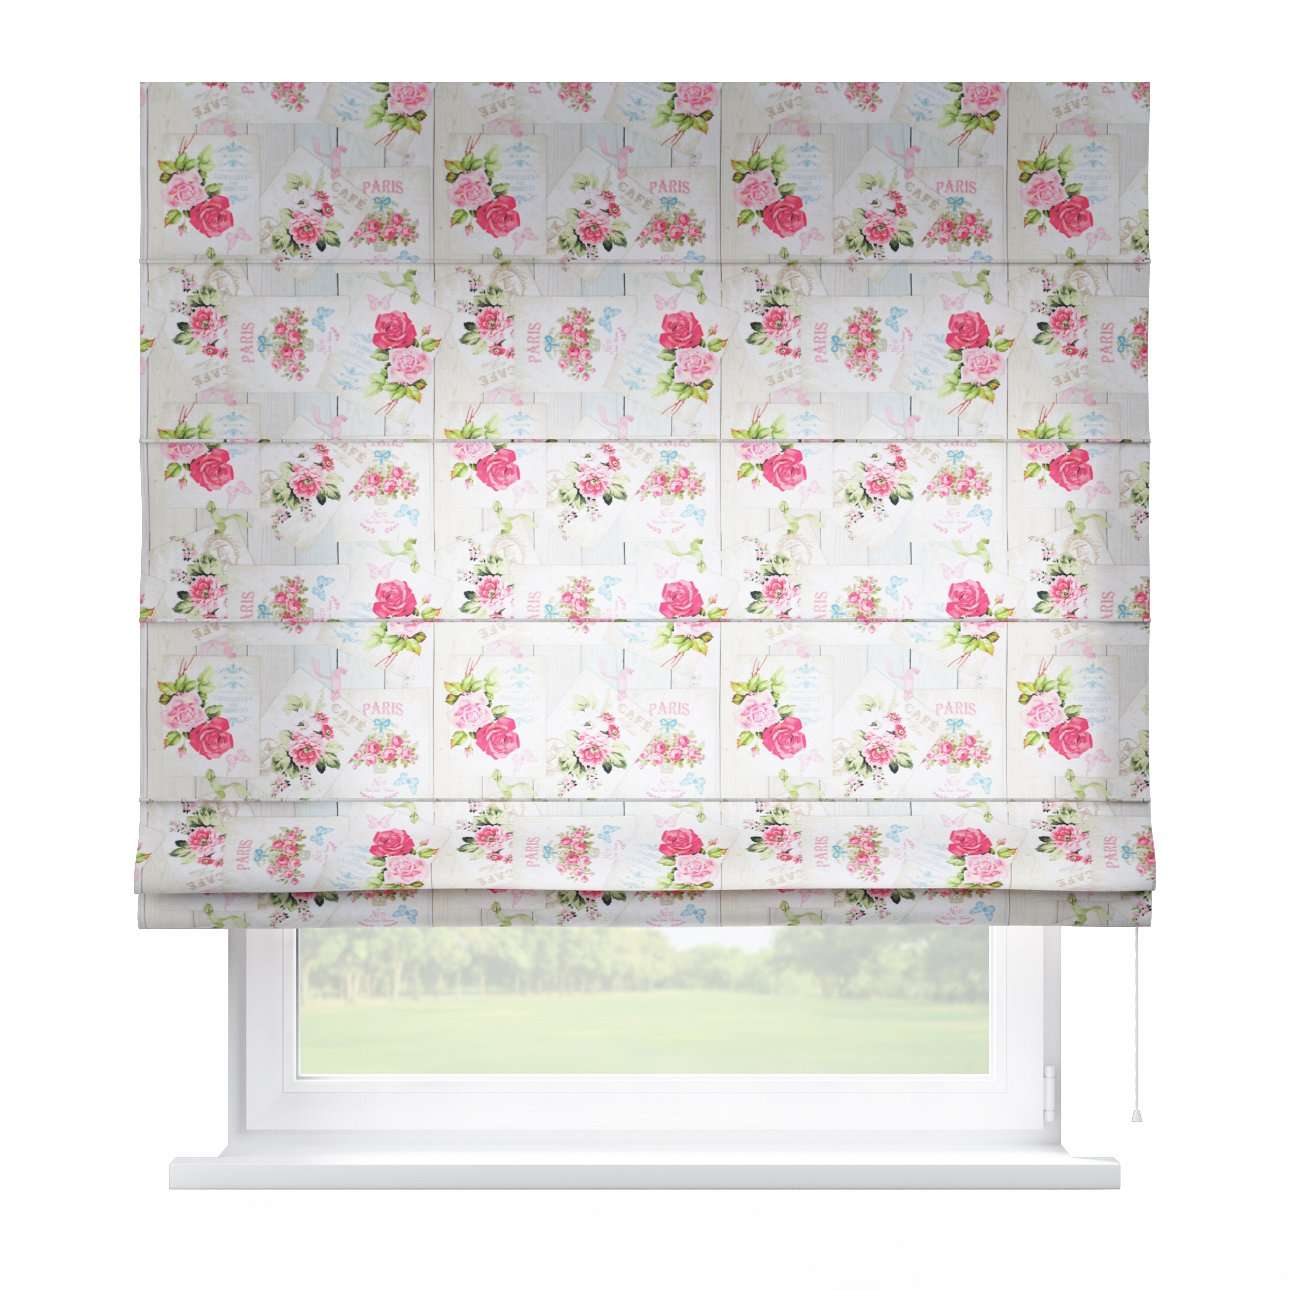 Capri roman blind 80 x 170 cm (31.5 x 67 inch) in collection Ashley, fabric: 140-19